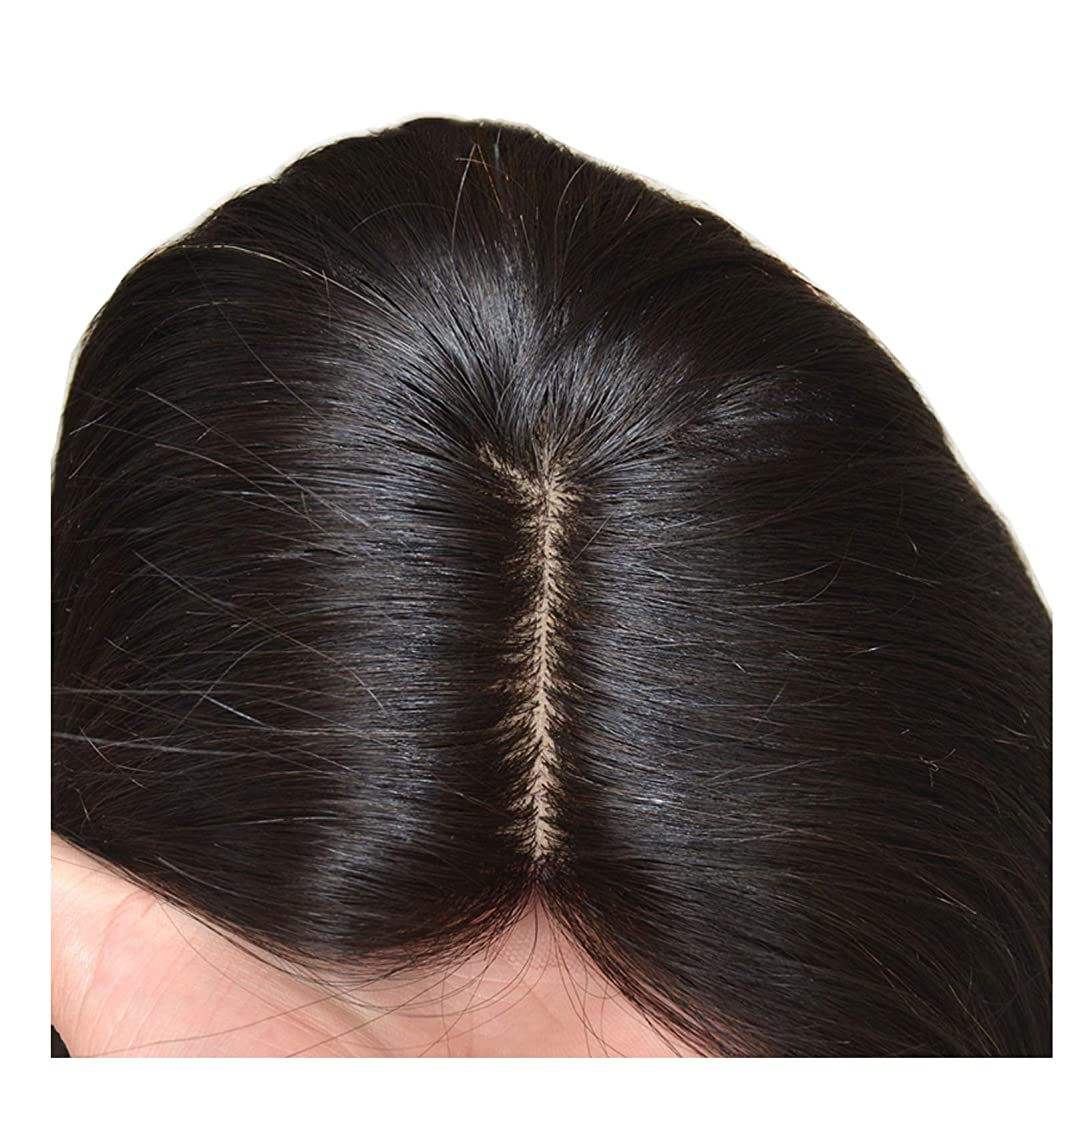 Silk Base Lace Front Human Hair Wigs For Women Indian Remy Hair Body Wave Lace Front Wig With Baby Hair Pre Plucked Hairline,10inches